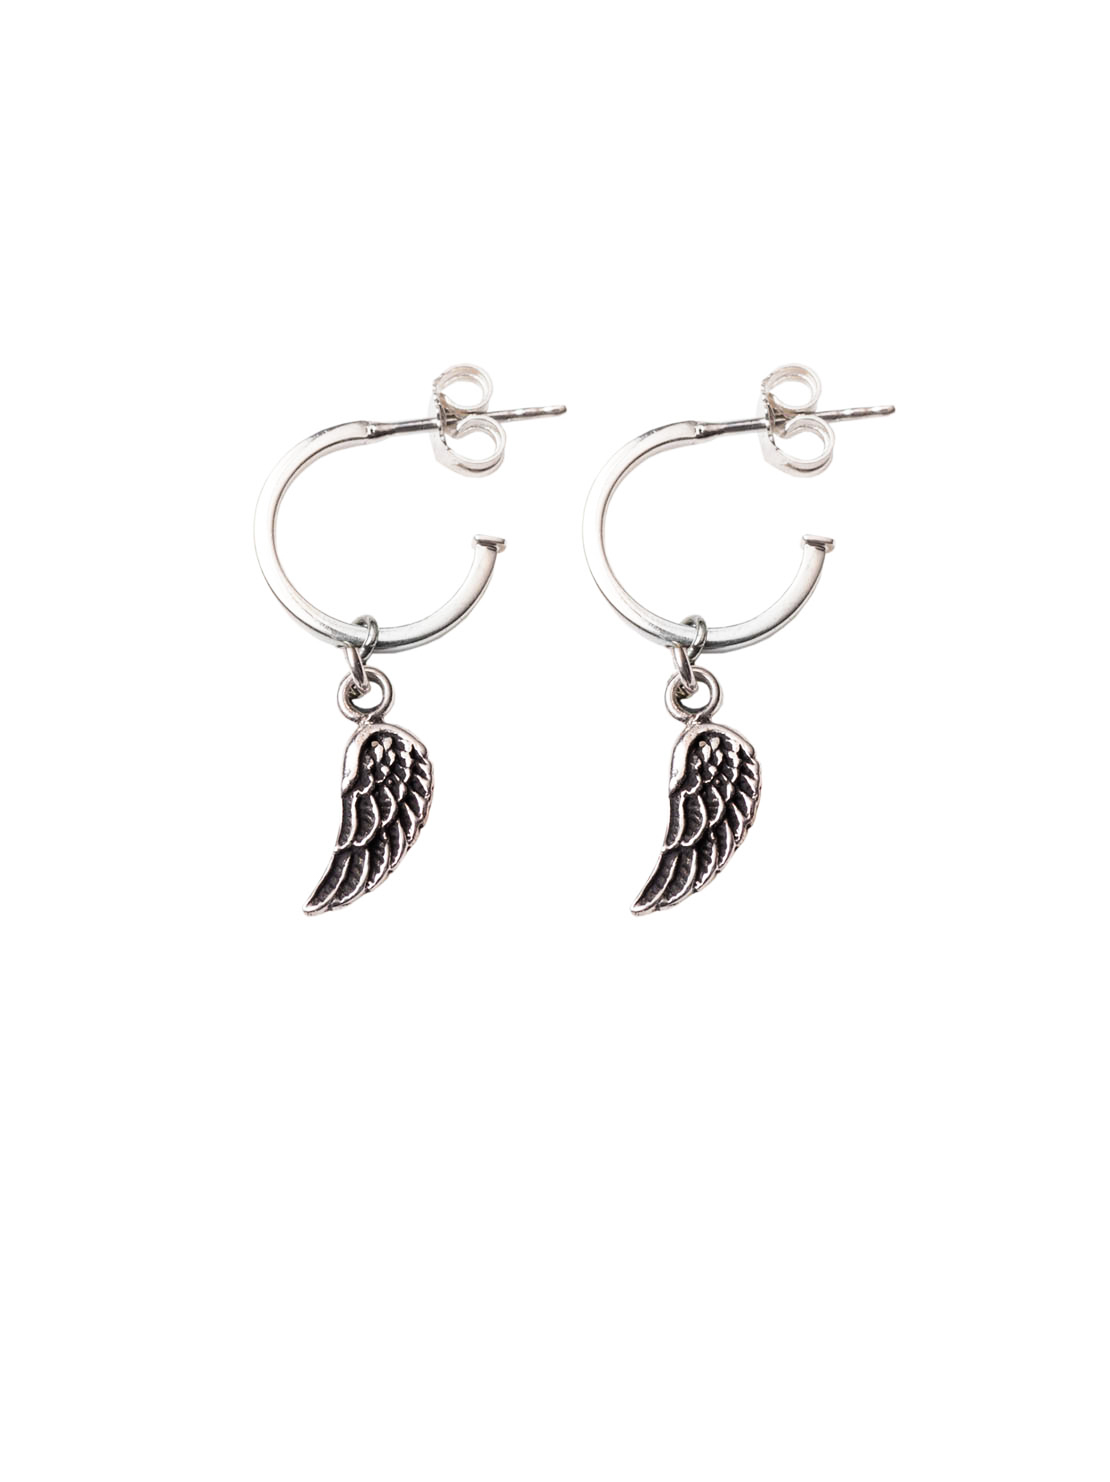 earring links jewellery hoop en london hires eu silver of sweetie sterling earrings